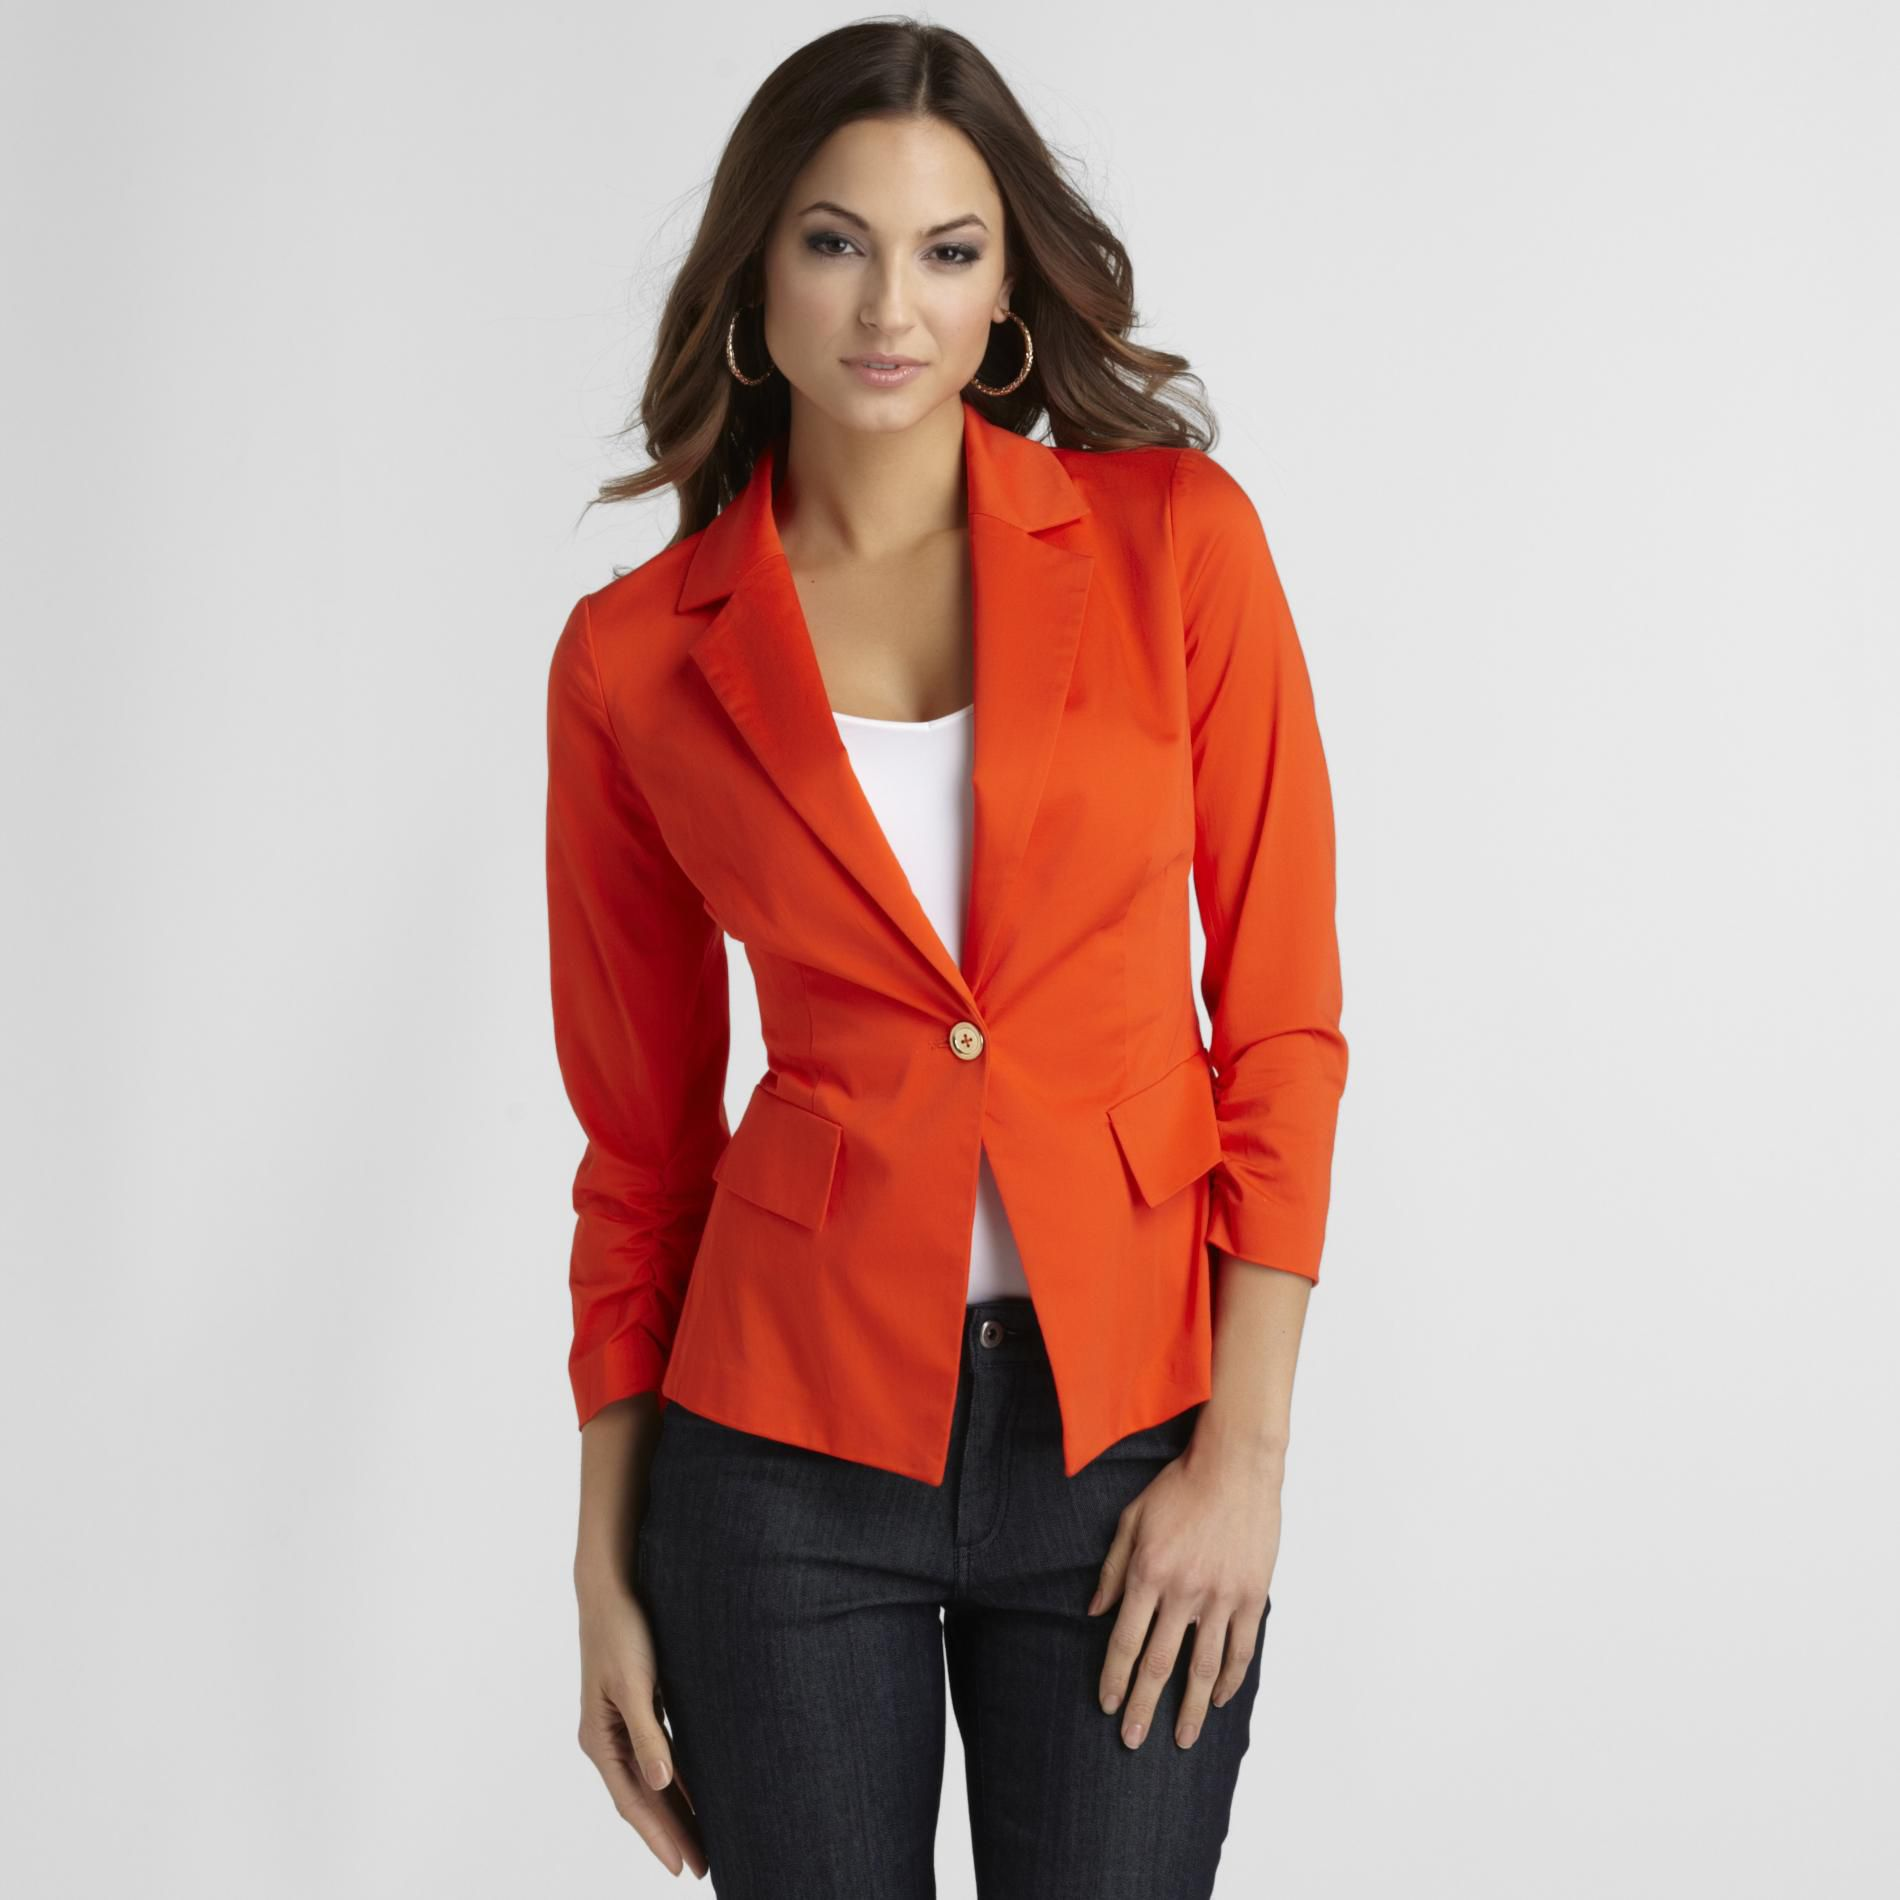 Sofia by Sofia Vergara Women's Fitted Blazer